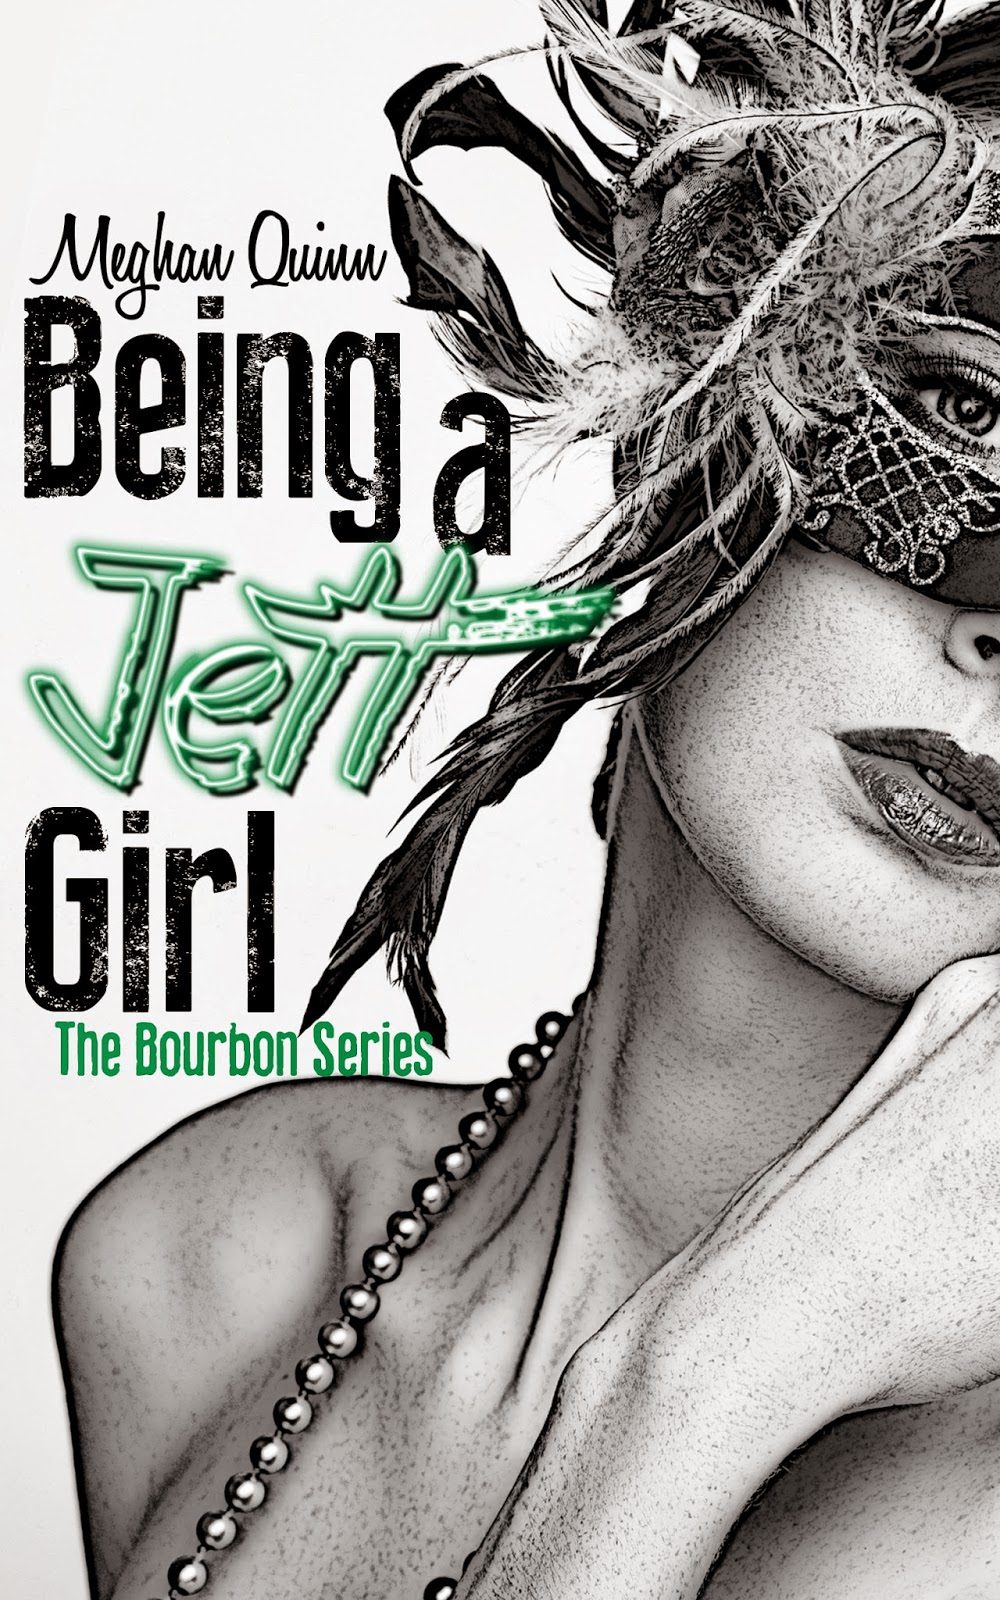 http://readsallthebooks.blogspot.com/2014/12/being-jett-girl-review.html